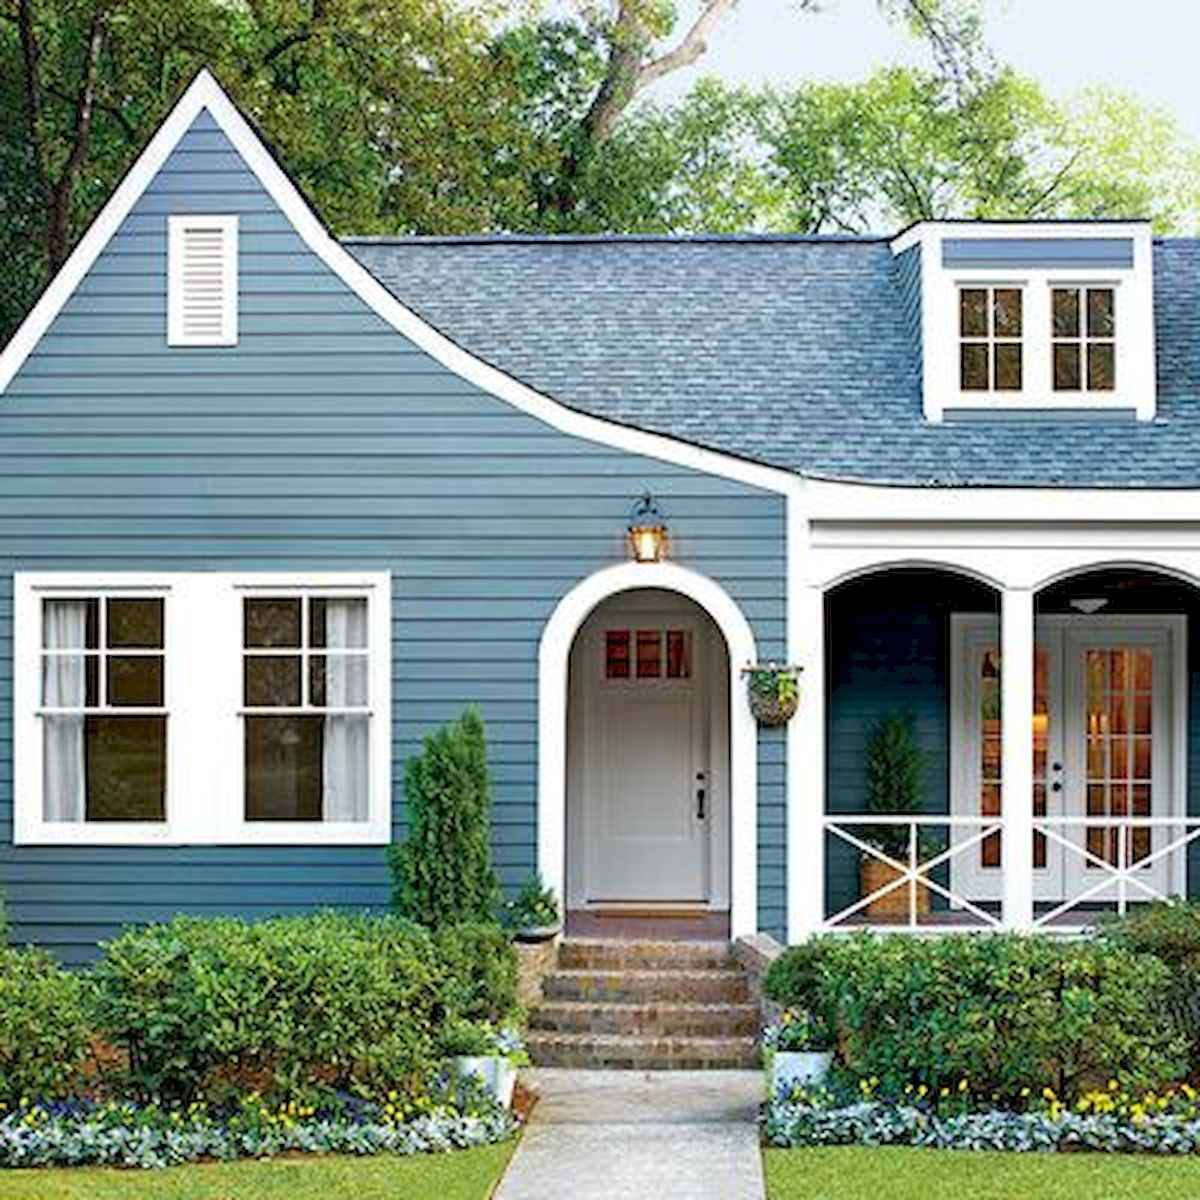 60 Beautiful Tiny House Plans Small Cottages Design Ideas (58)